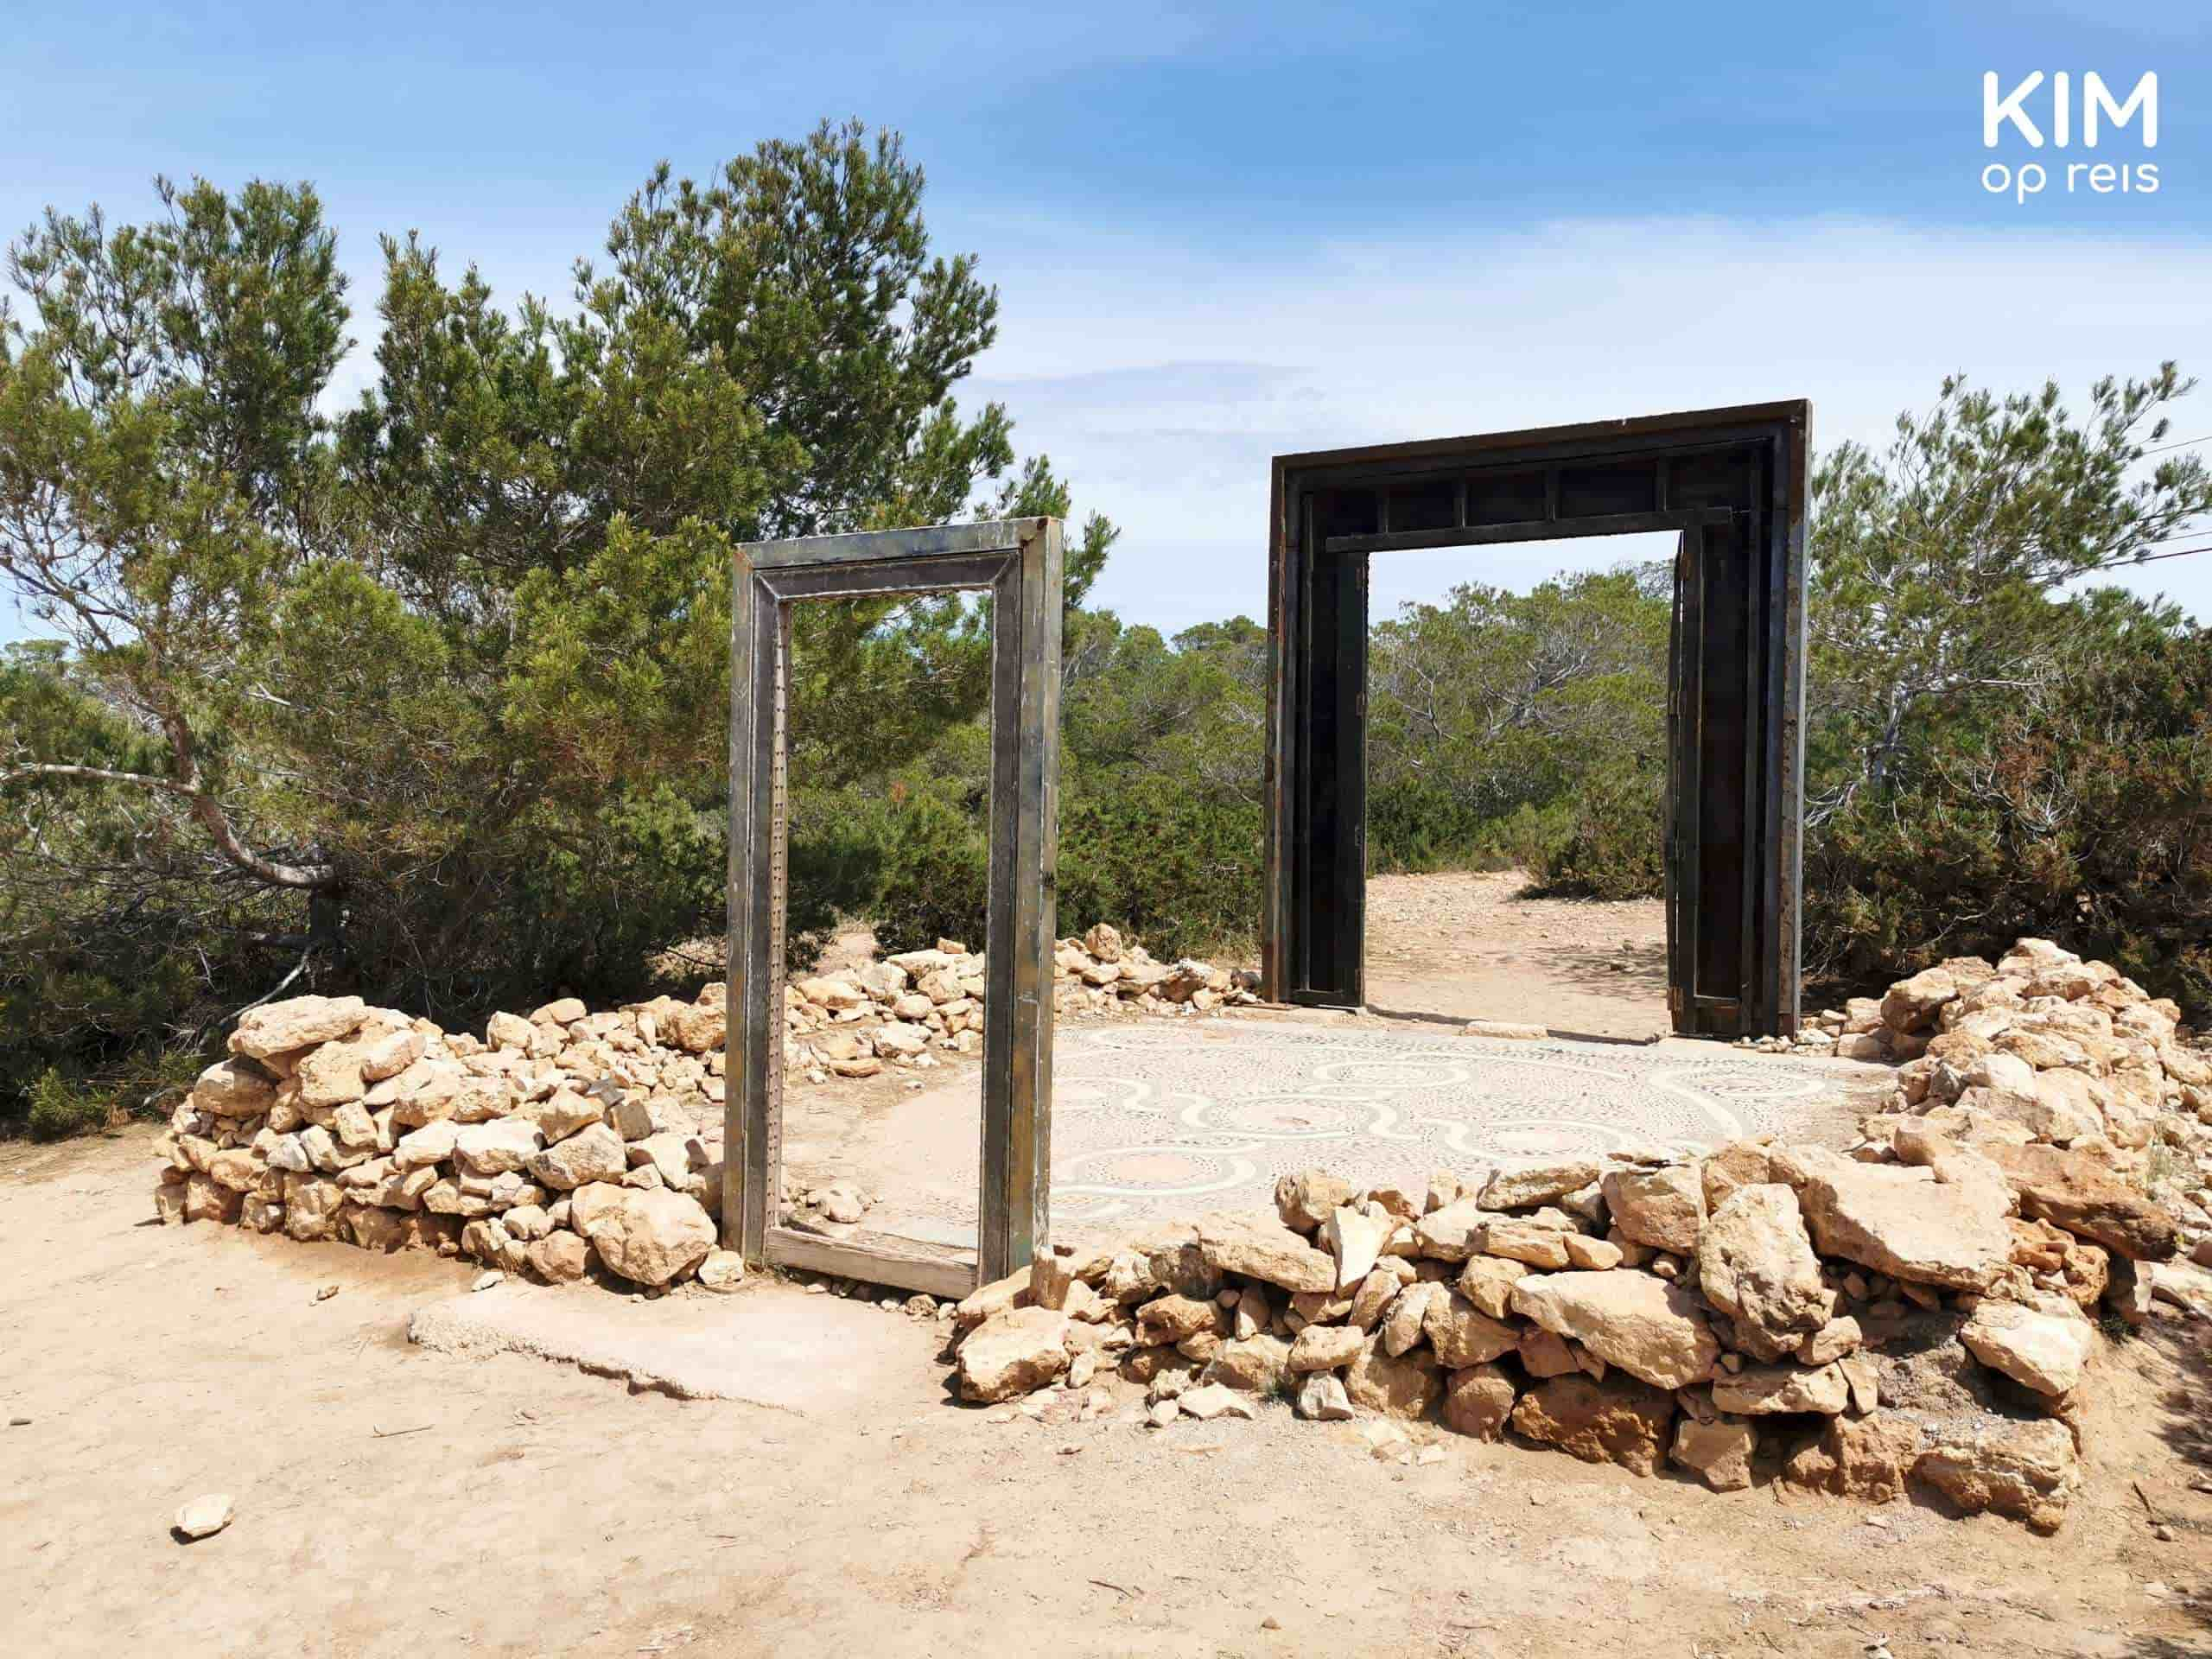 Puertas Can Soleil: a smaller door frame at the front and a larger one a few meters behind it